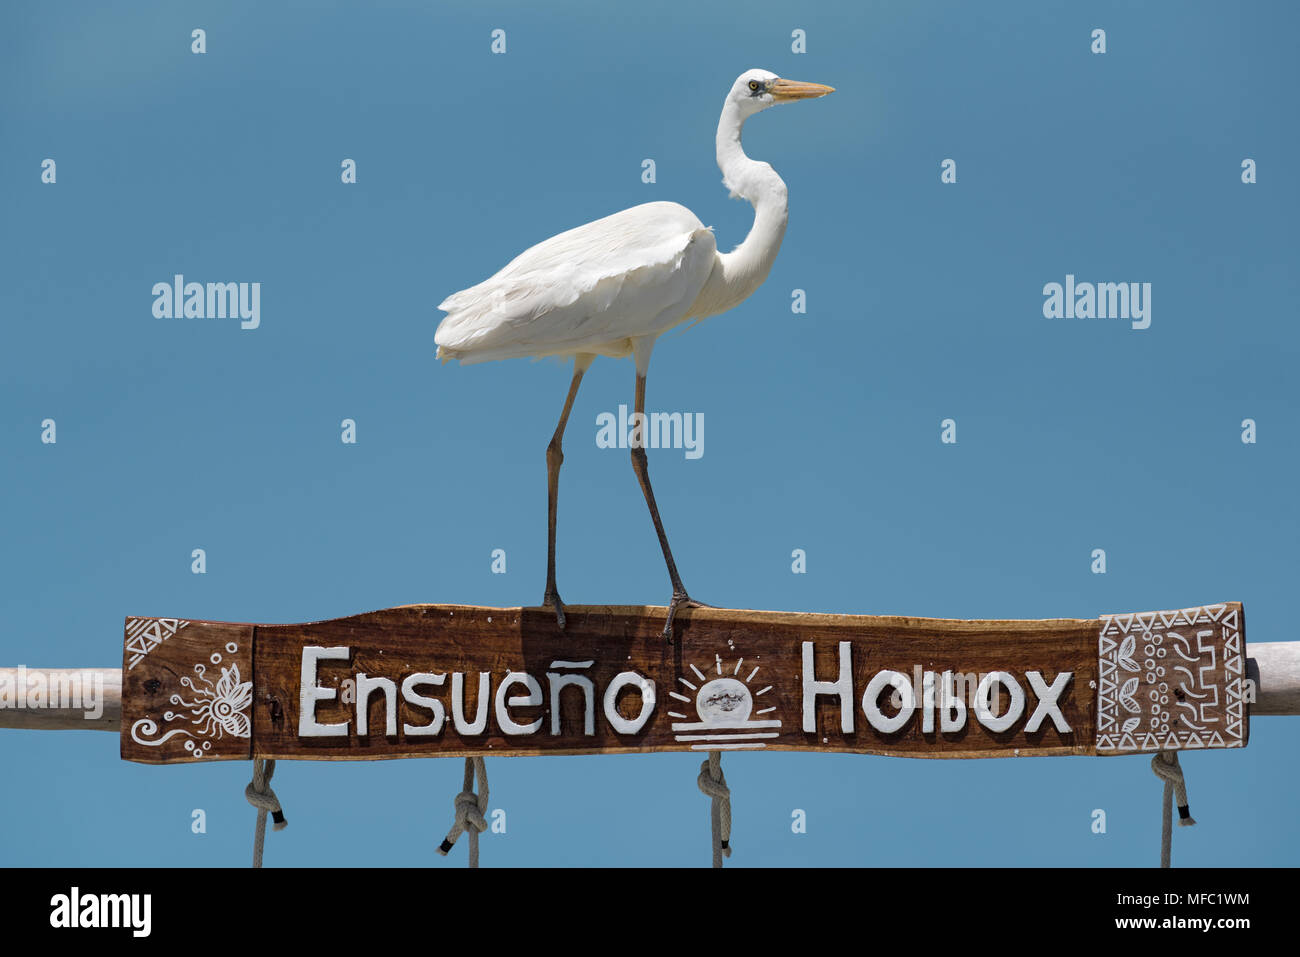 Great Egret (Ardea alba) on a wooden frame, holbox, mexico - Stock Image